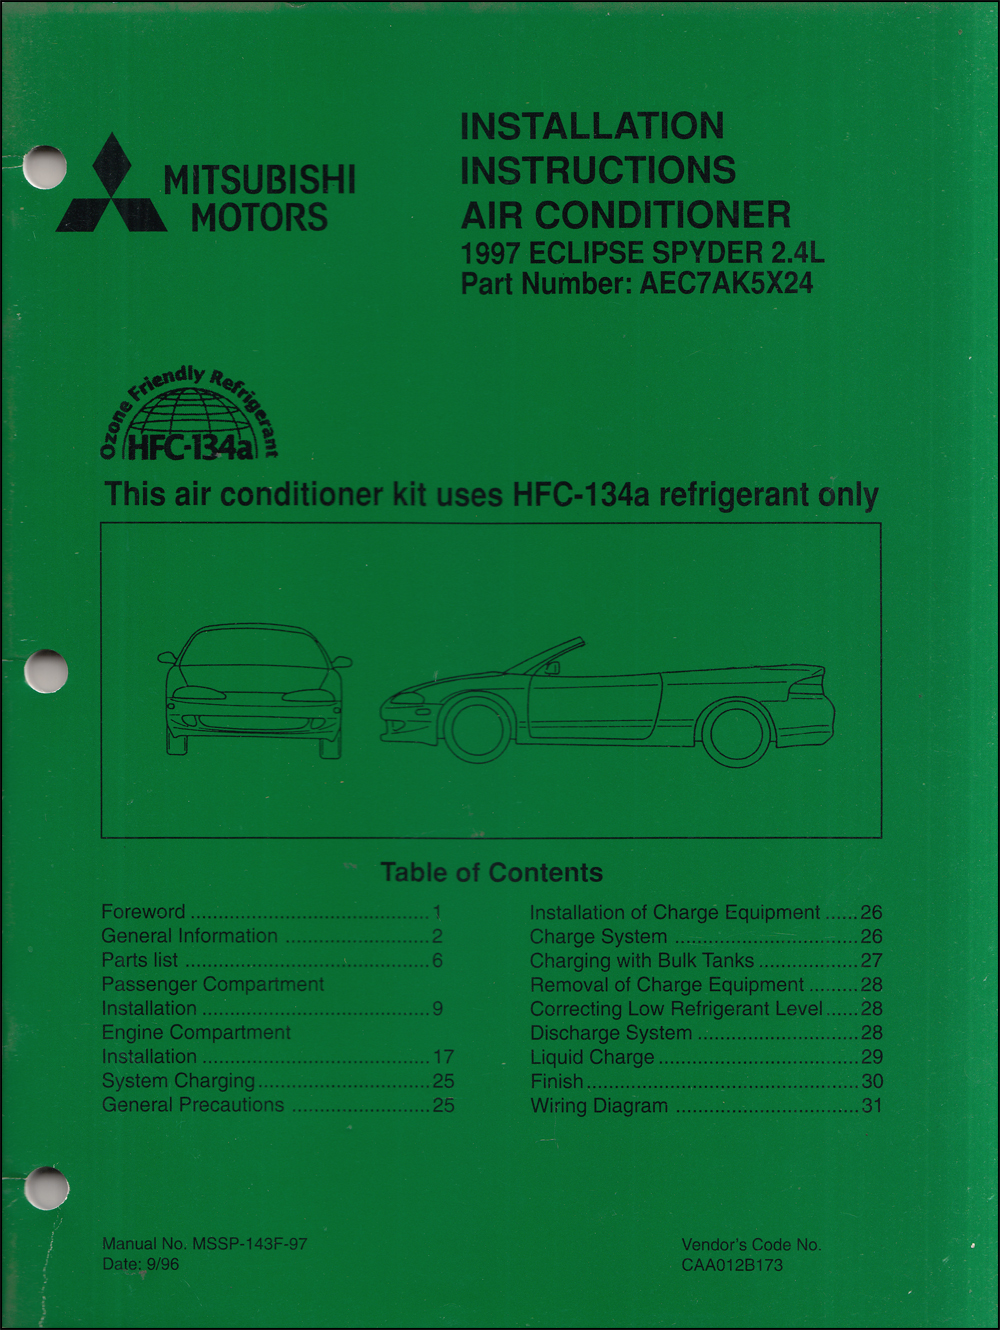 1997 Mitsubishi Eclipse Spyder GS 2.4L Air Conditioner Installation Instruction Manual Original A/C